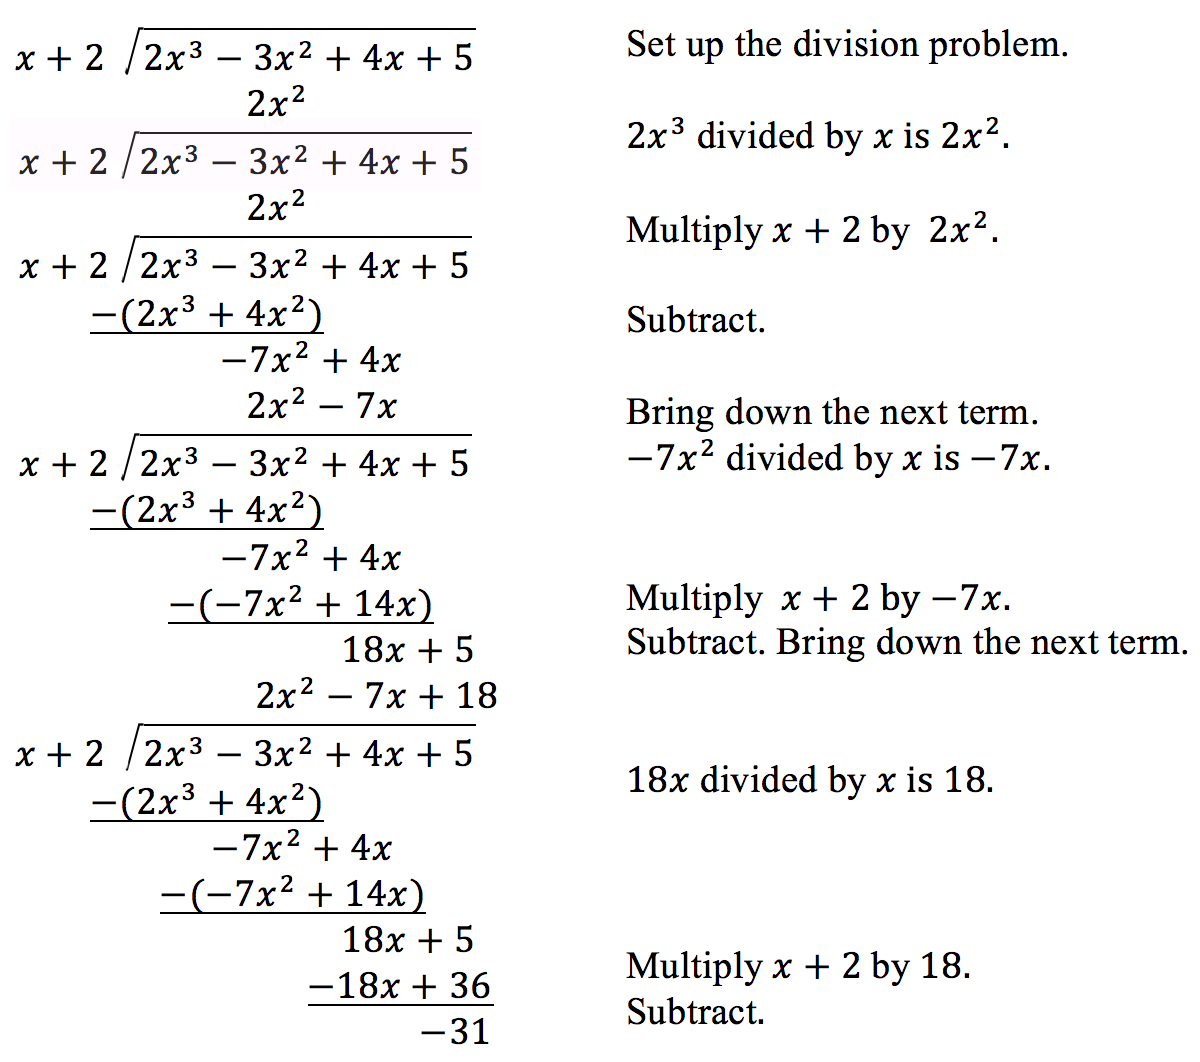 Worksheets Dividing Polynomials Worksheet dividing polynomials precalculus steps of long division for polynomials